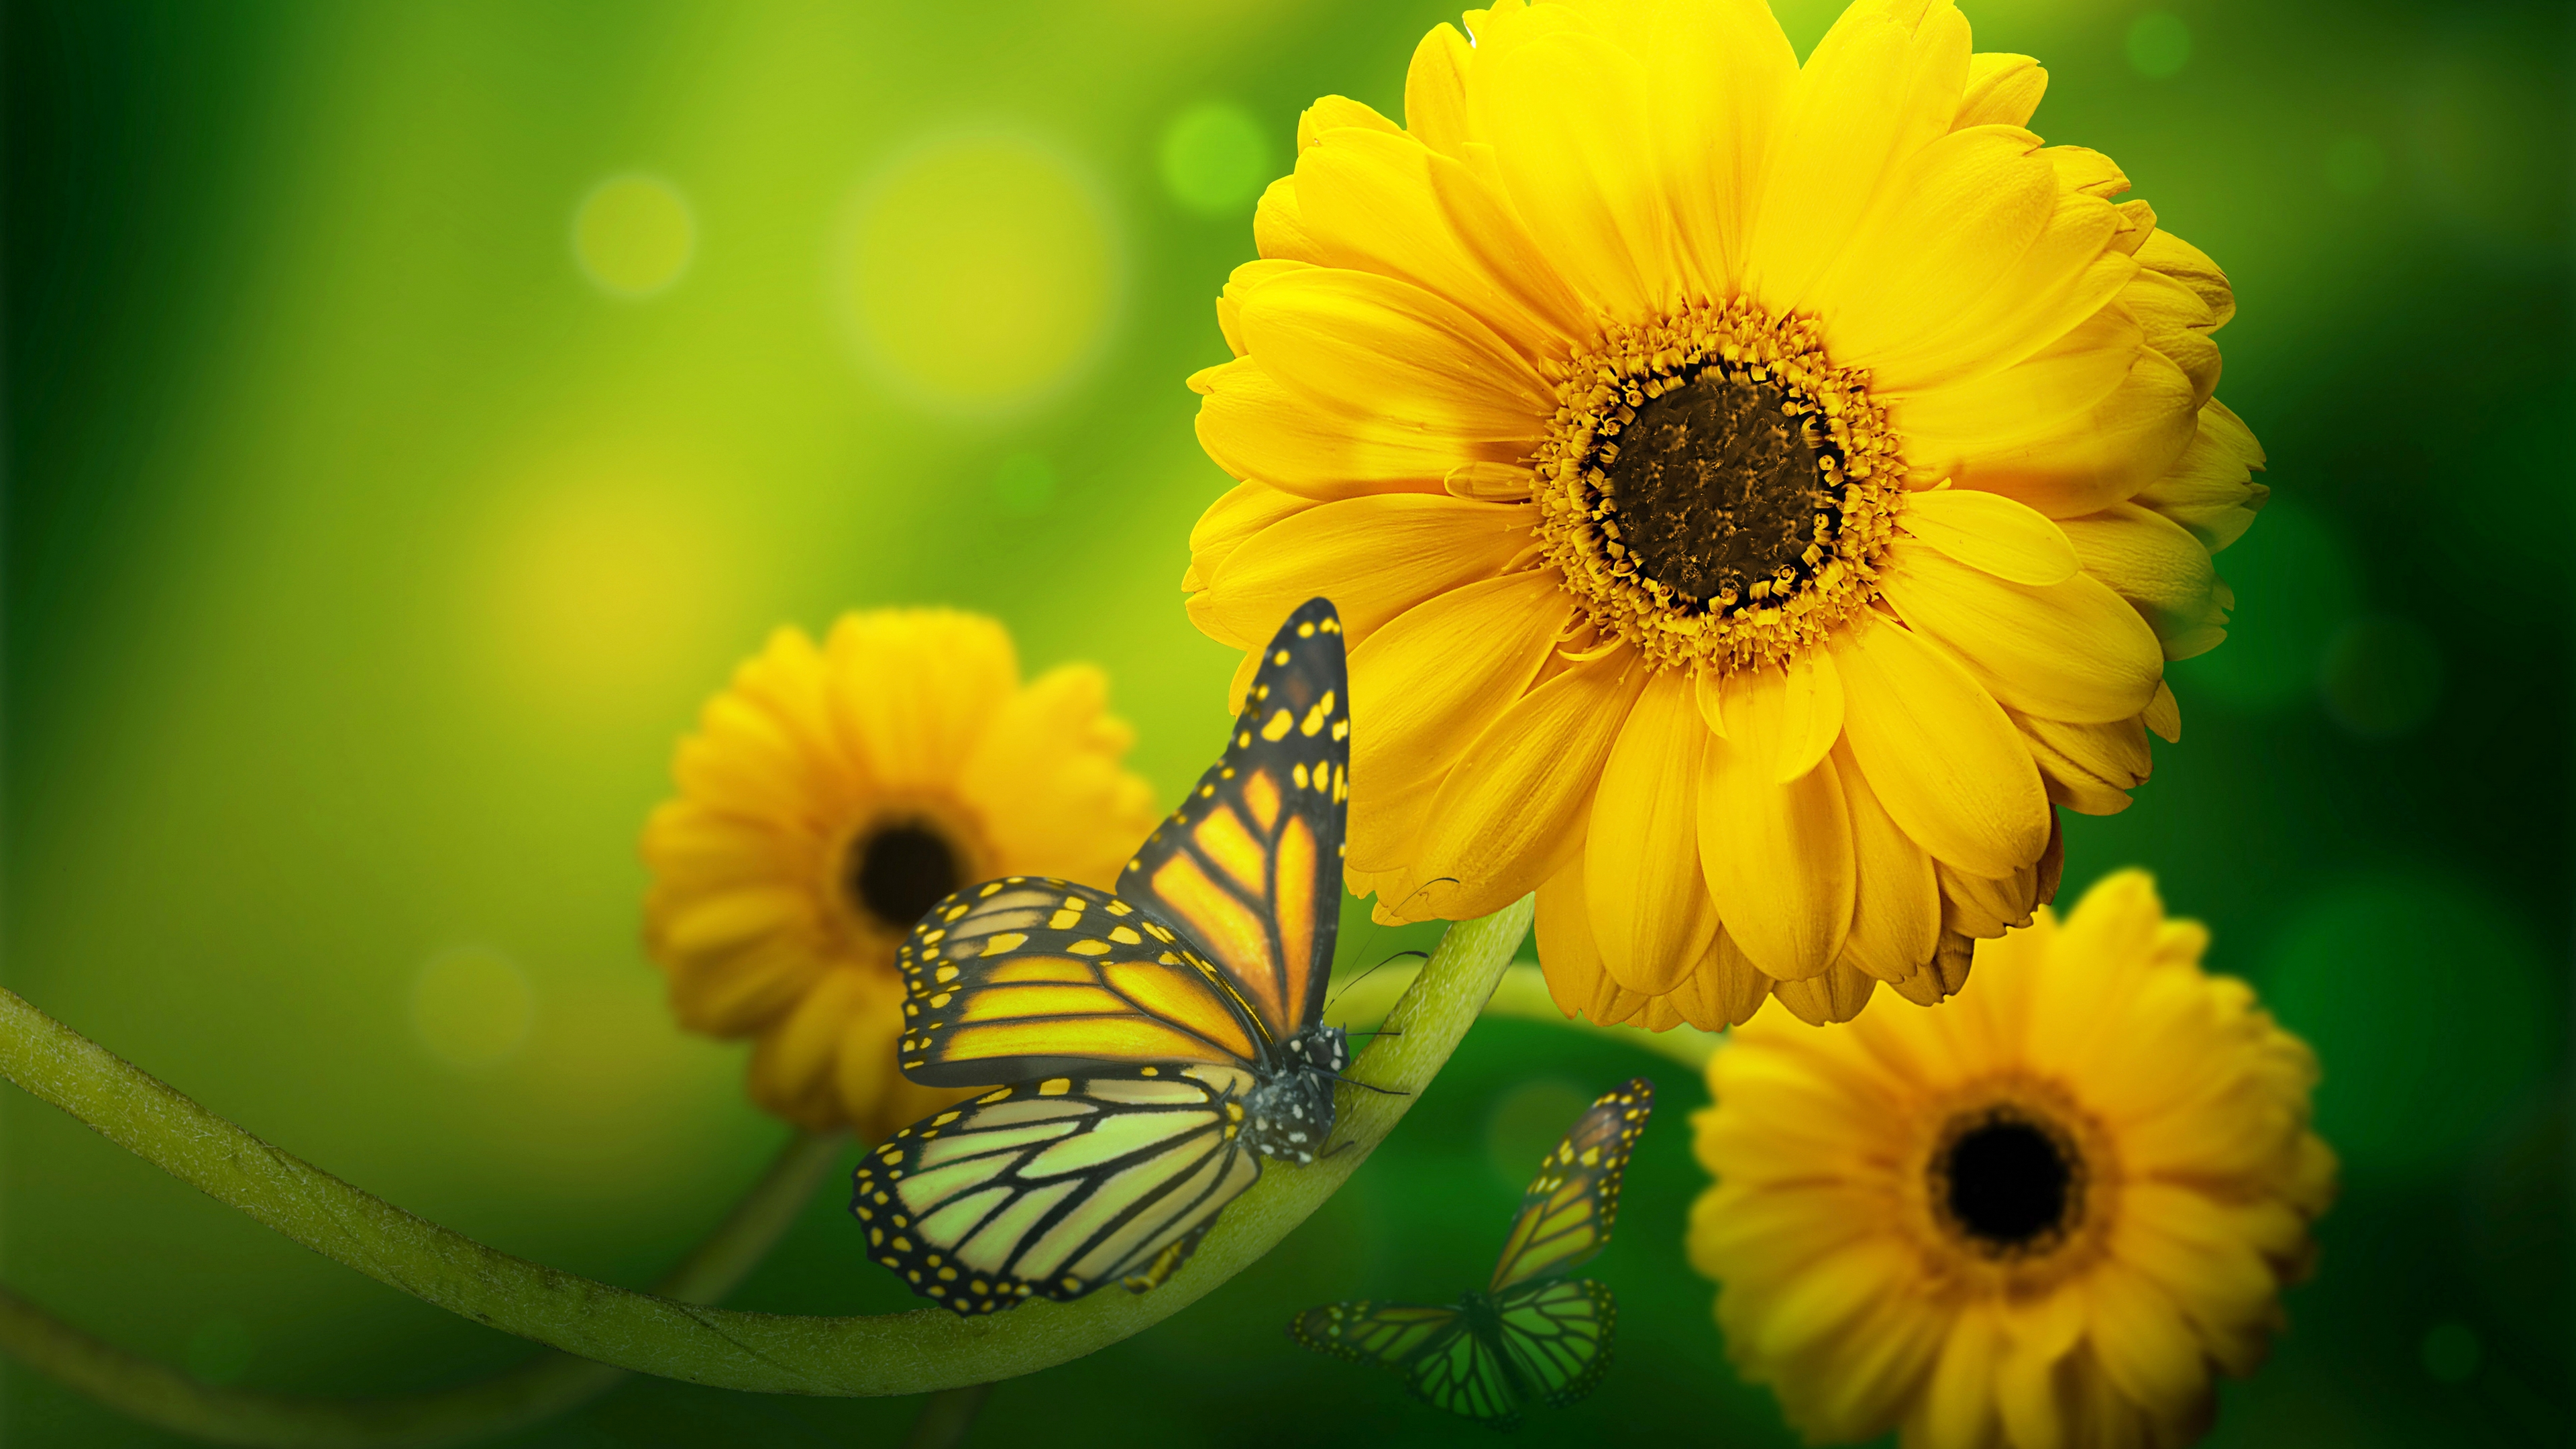 Yellow Flowers With Butterfly 4k Wallpaper